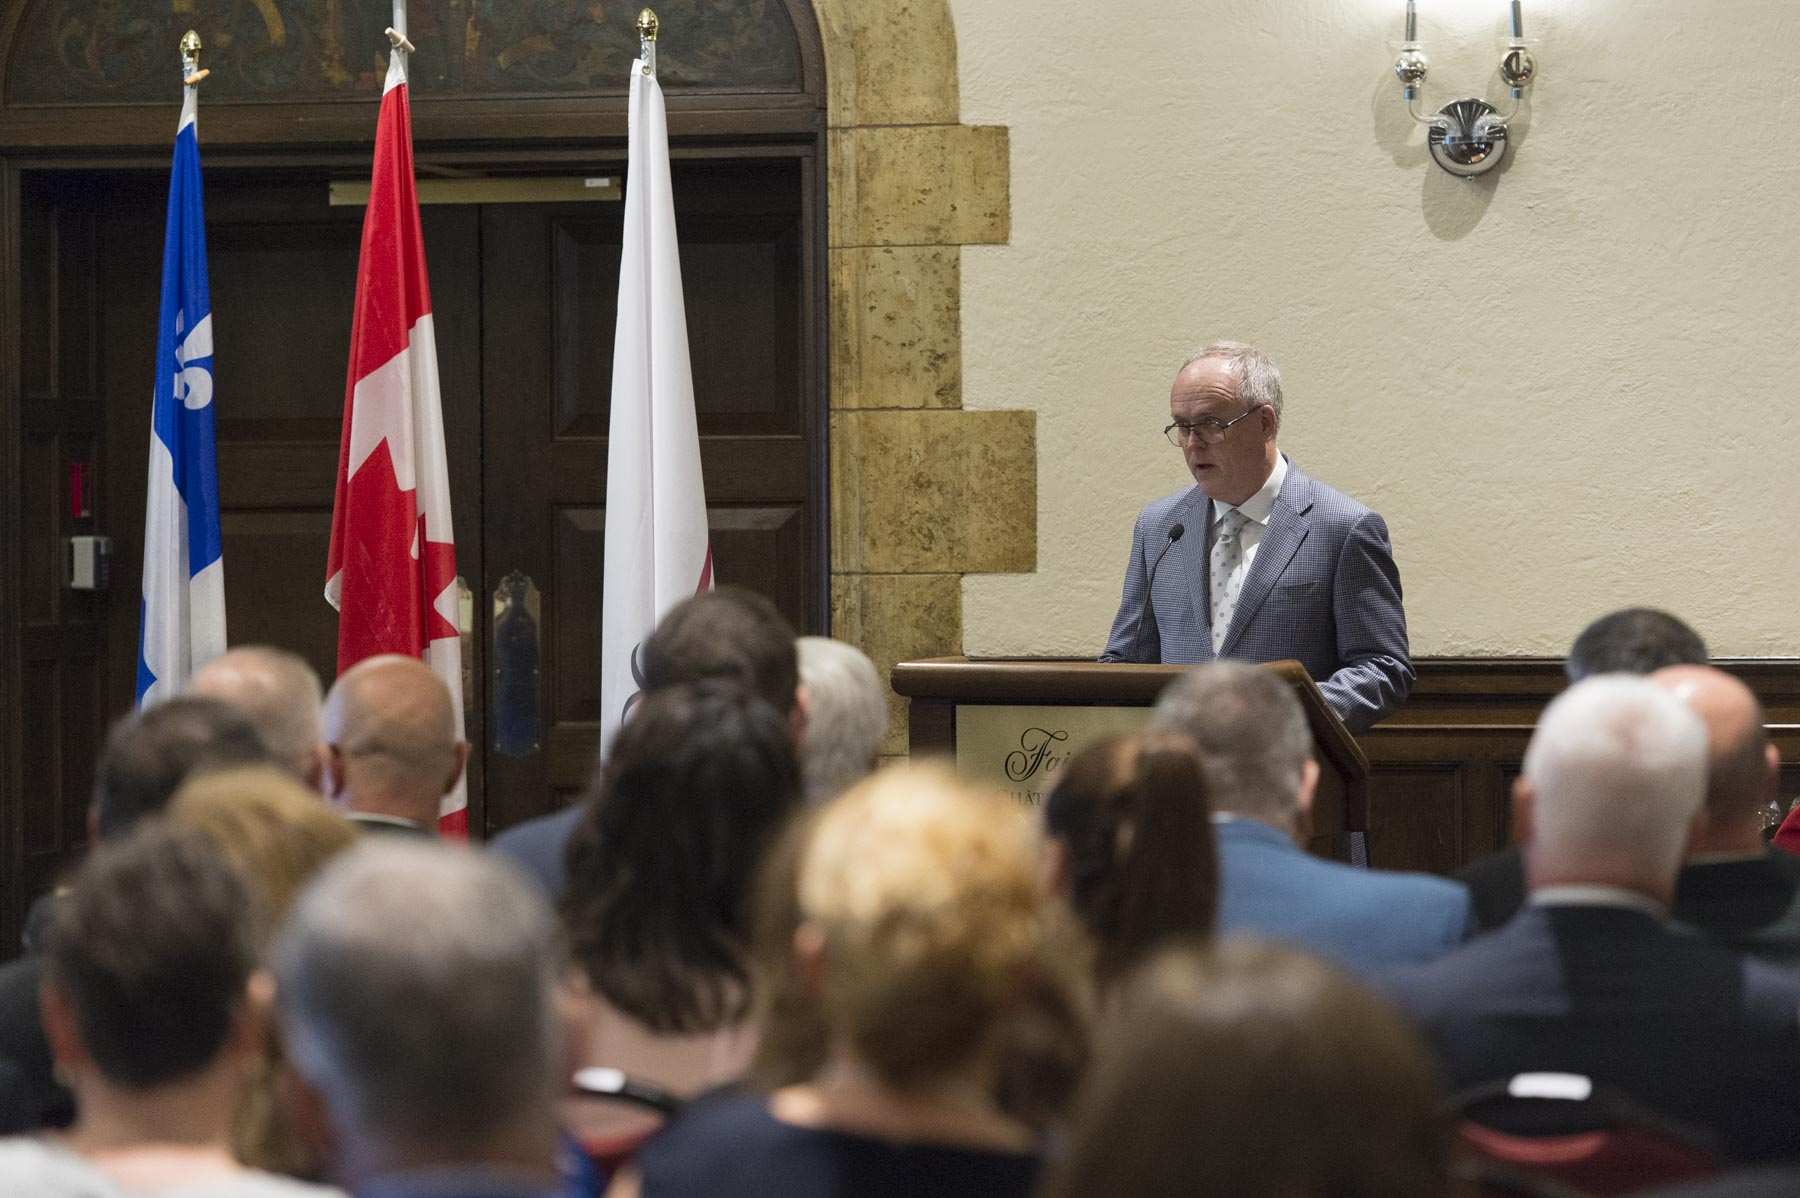 Mr. Grant Hamilton, president of Quebec wing of Duke of Edinburgh's International Award Program, welcomed recipients and their parents to The Duke of Edinburgh's Gold Awards of Achievement ceremony, held on September 11, 2017.